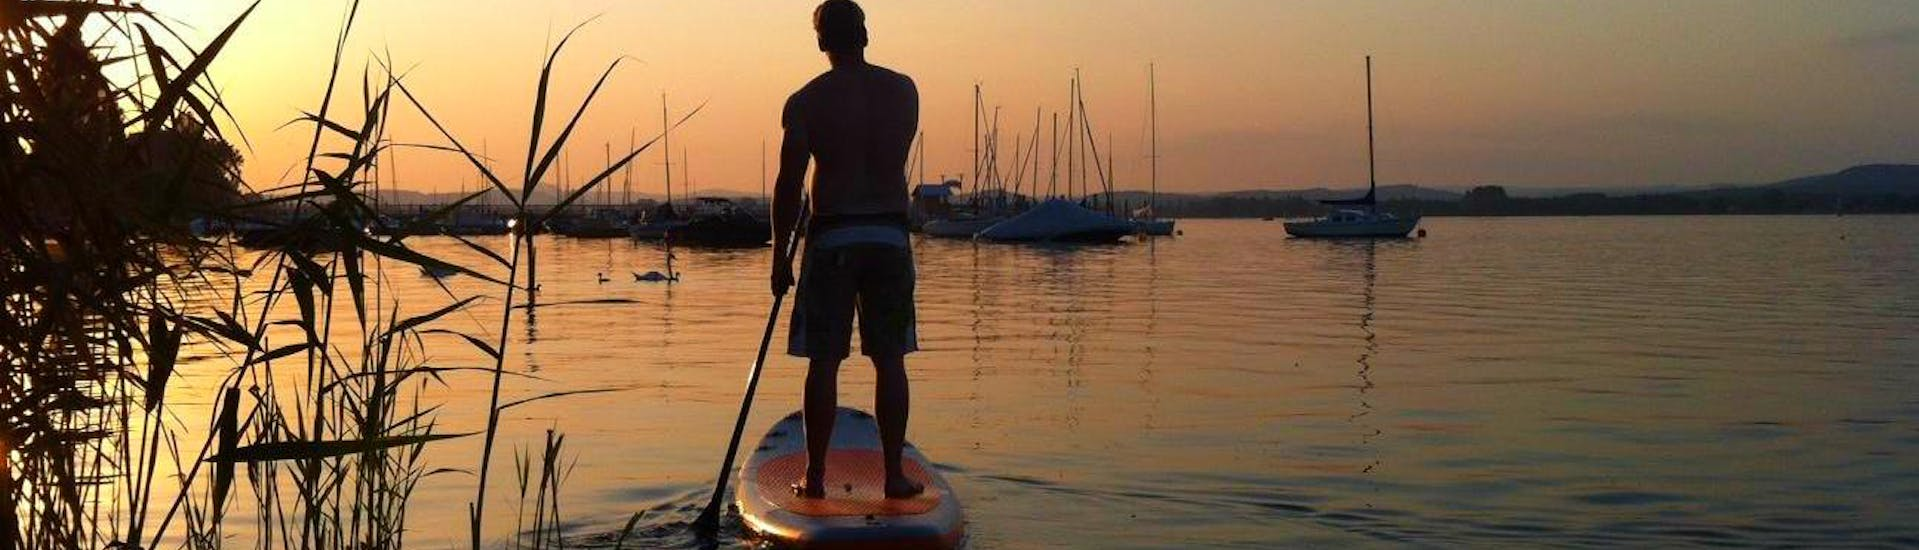 stand-up-paddling-lake-constance-mb-events-hero